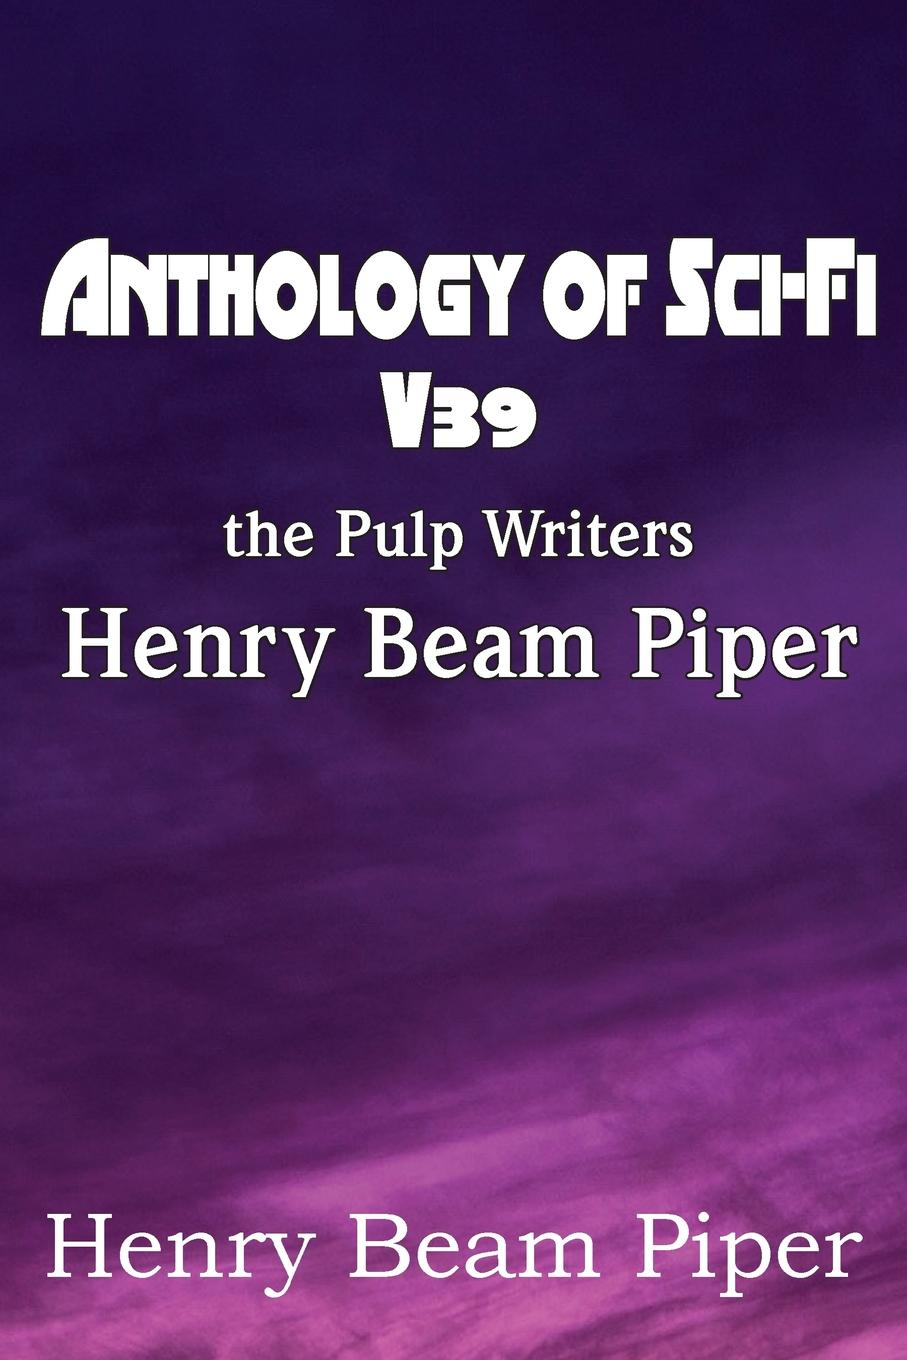 Henry Beam Piper Anthology of Sci-Fi V39, the Pulp Writers - Henry Beam Piper henry beam piper paratime